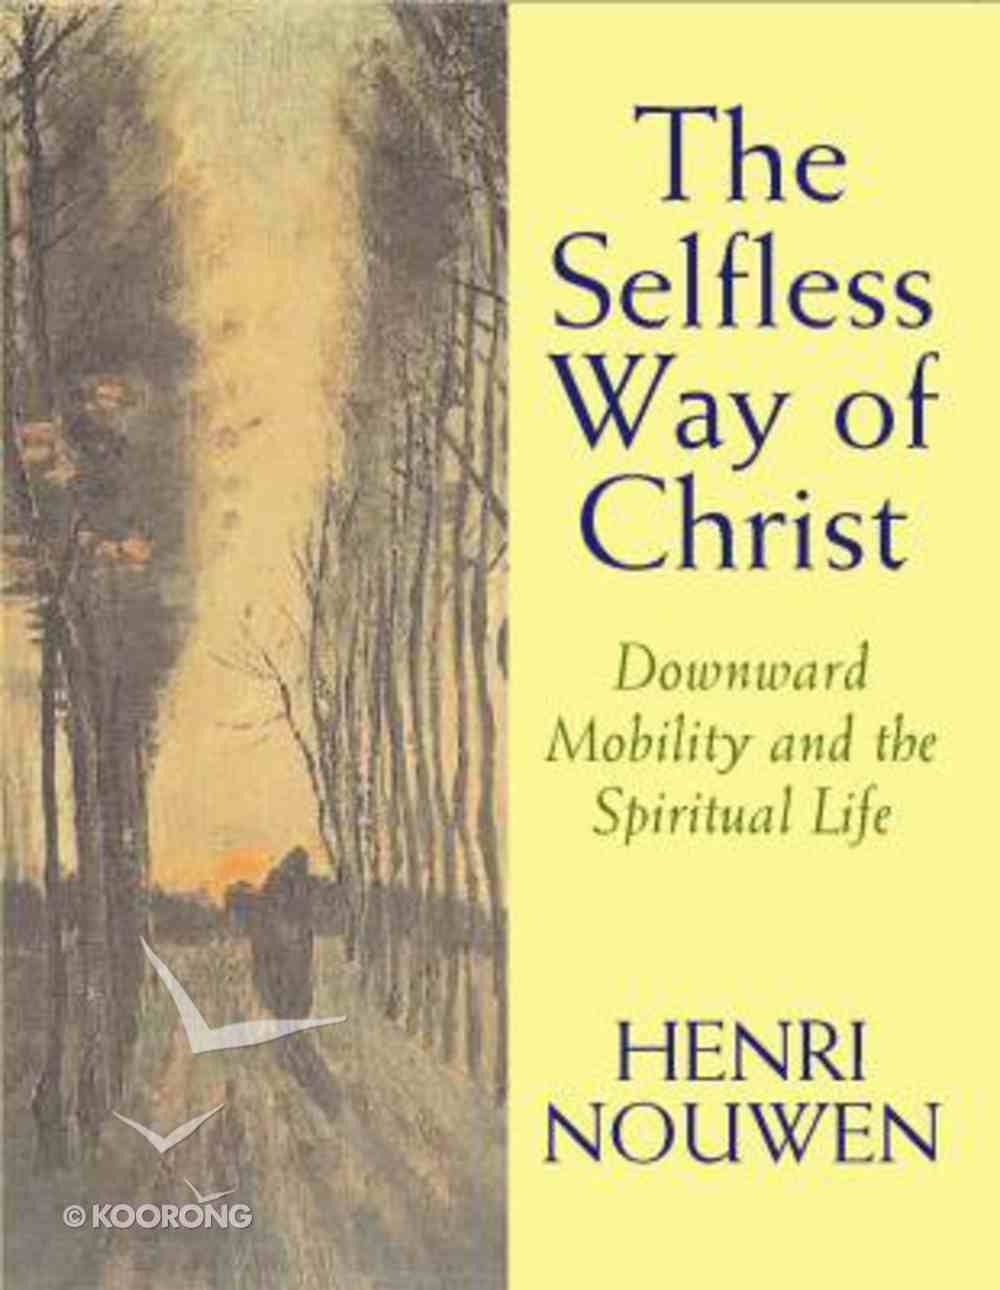 The Selfless Way of Christ Paperback